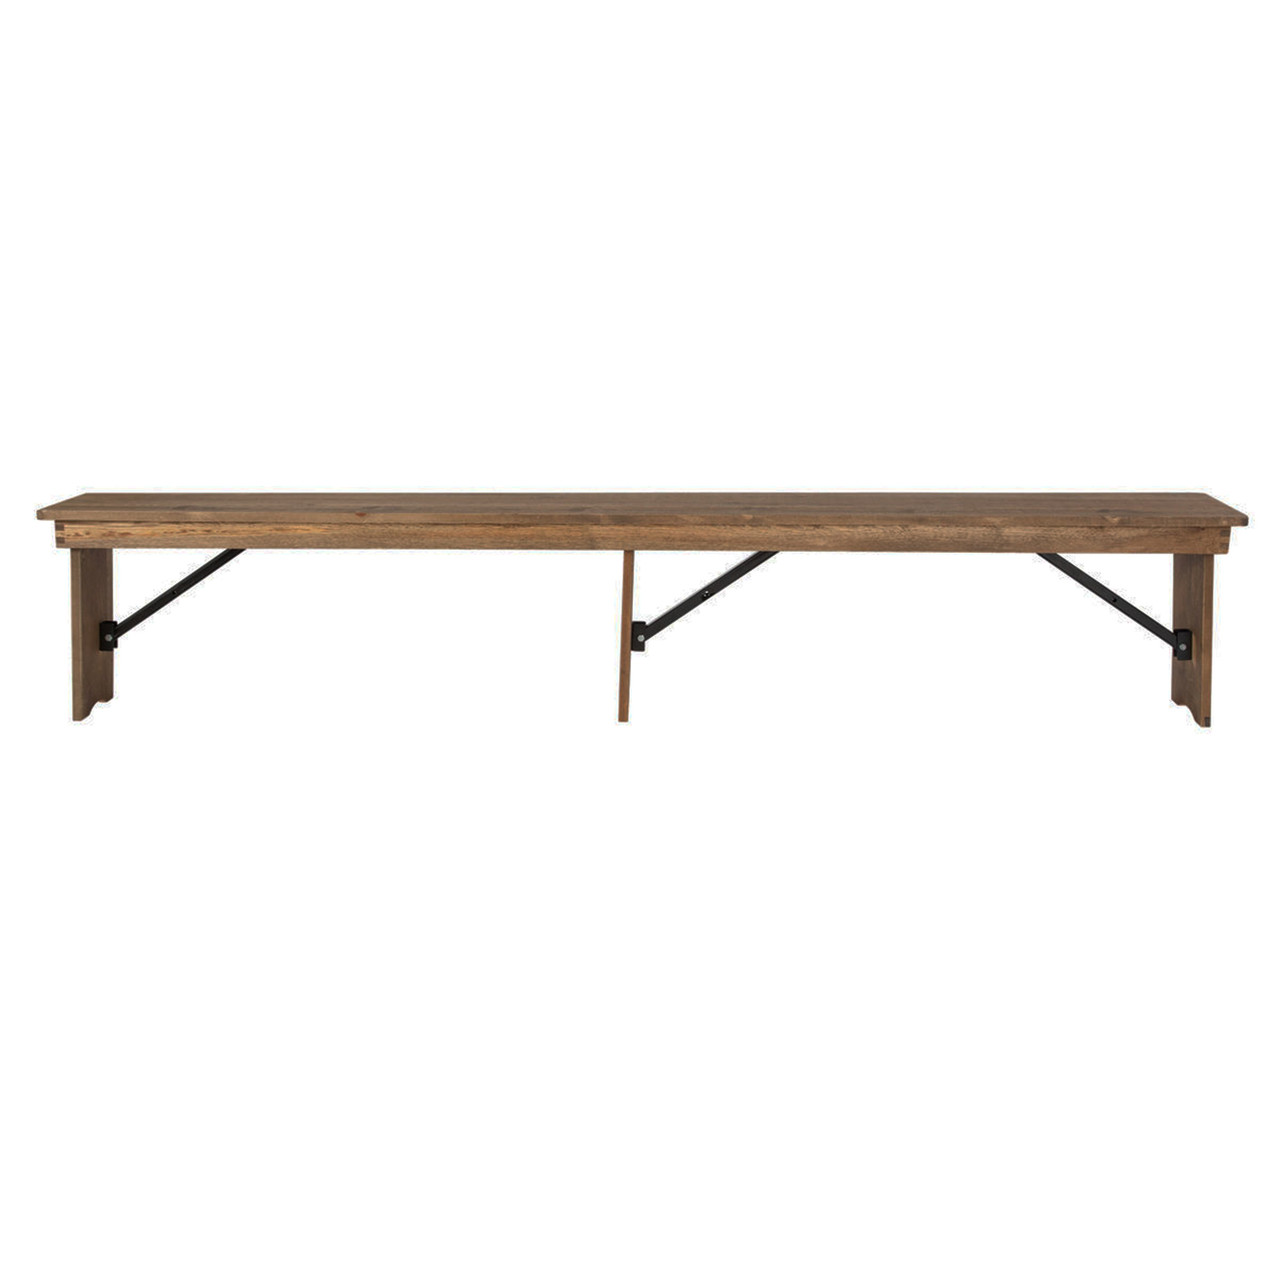 Farmhouse Table Bench 12x96 Rustic Pine Wooden Folding Table